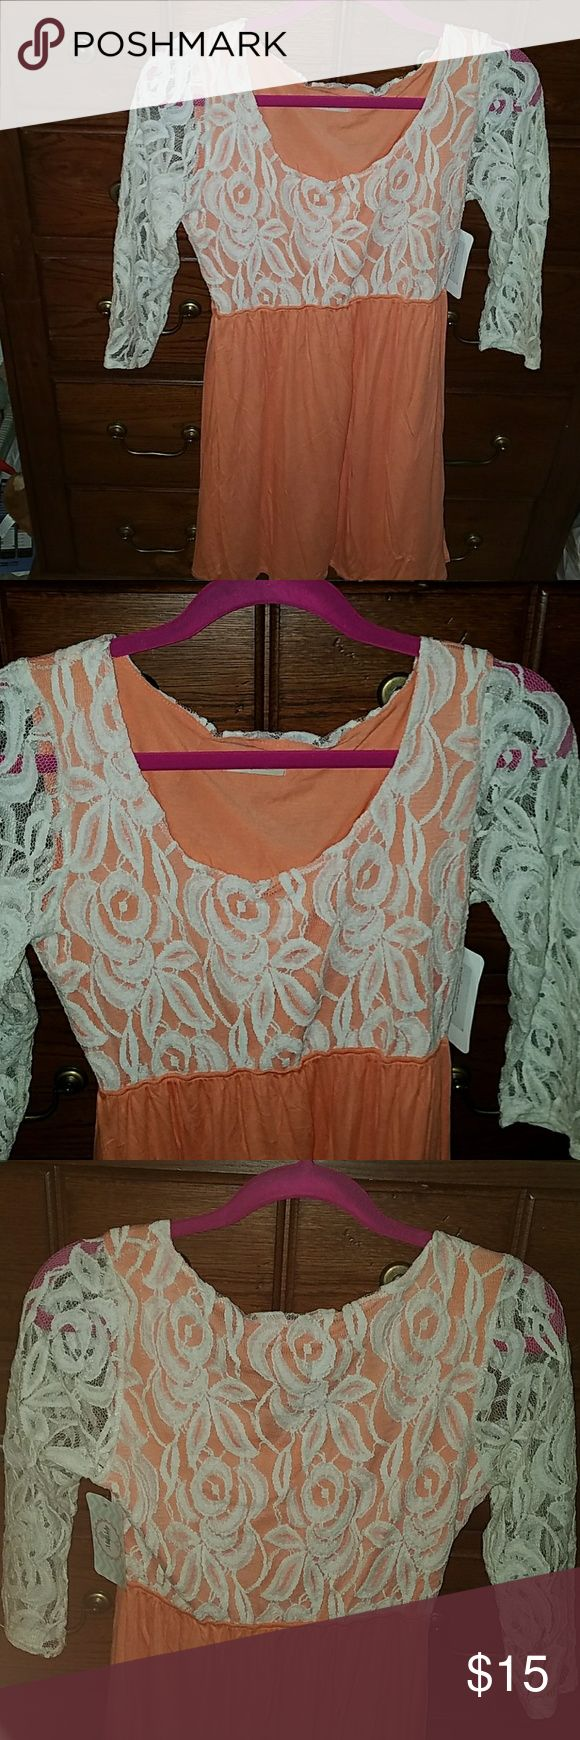 Lace dress from the mint julep boutique! NWT LG Perfect spring dress! Lace and apricot. Above the knee. Never Worn! Size large Dresses Midi